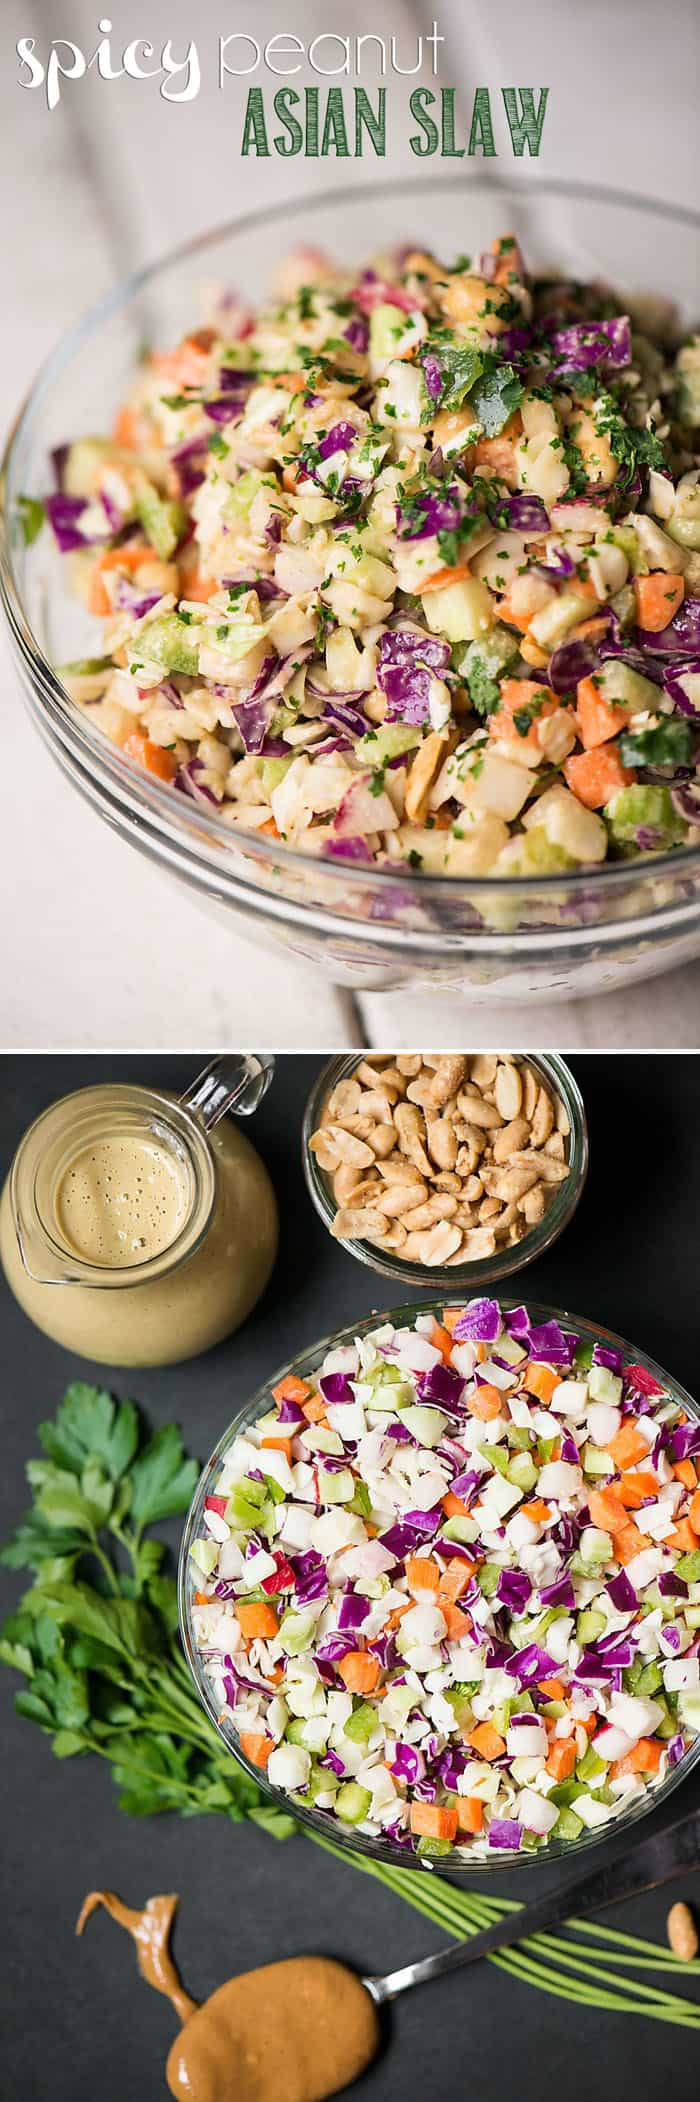 If you're looking for a quick and healthy side salad to accompany your meal, look no further than this easy Spicy Peanut Asian Slaw.